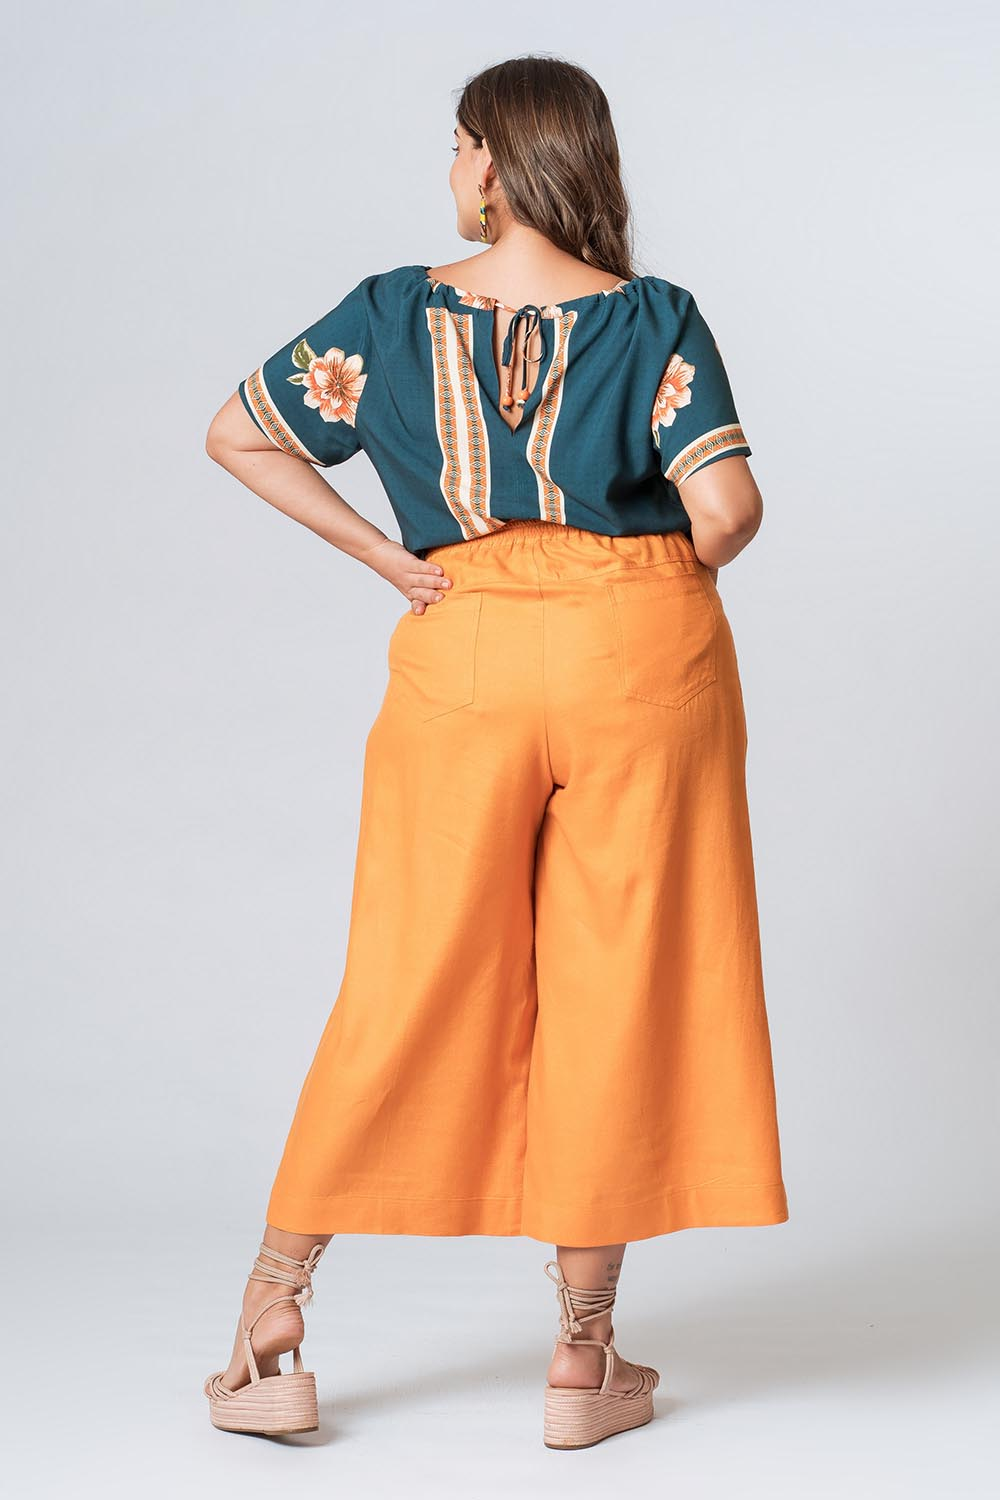 calca_plus_size_cropped_nervura_amarelo_19623_2_20200915112242